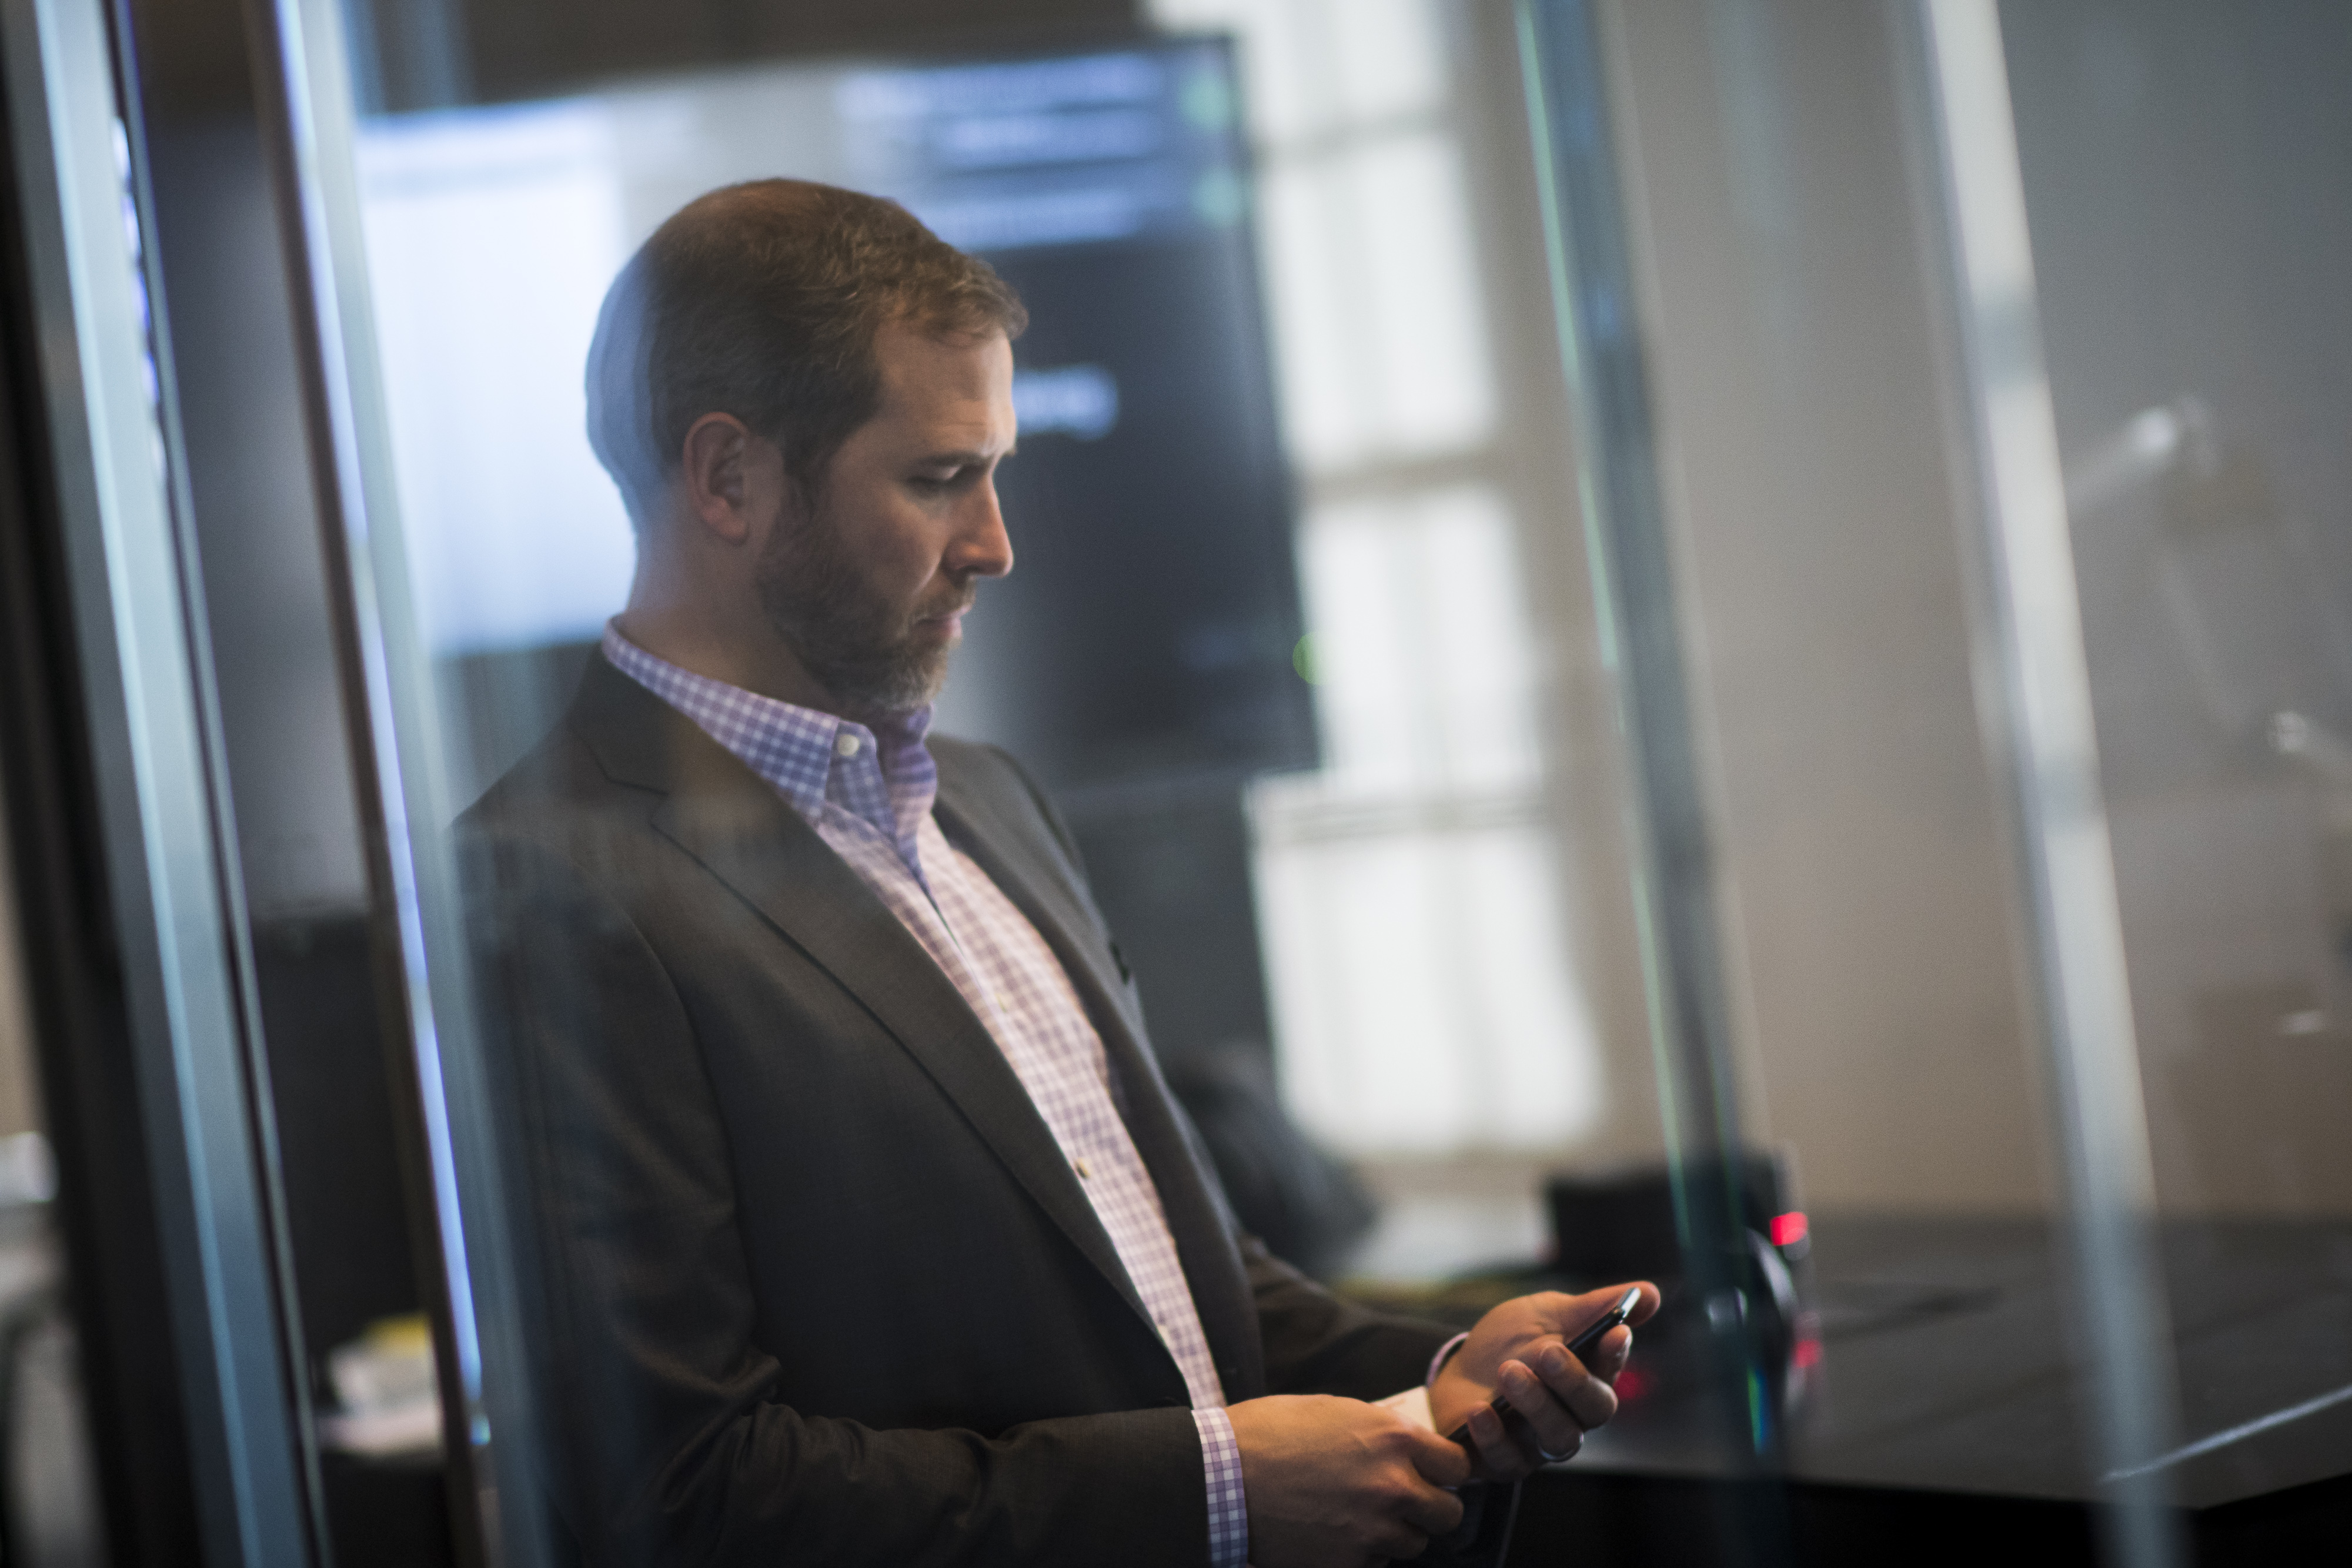 Ripple Labs Inc. Chief Executive Officer Brad Garlinghouse Interview